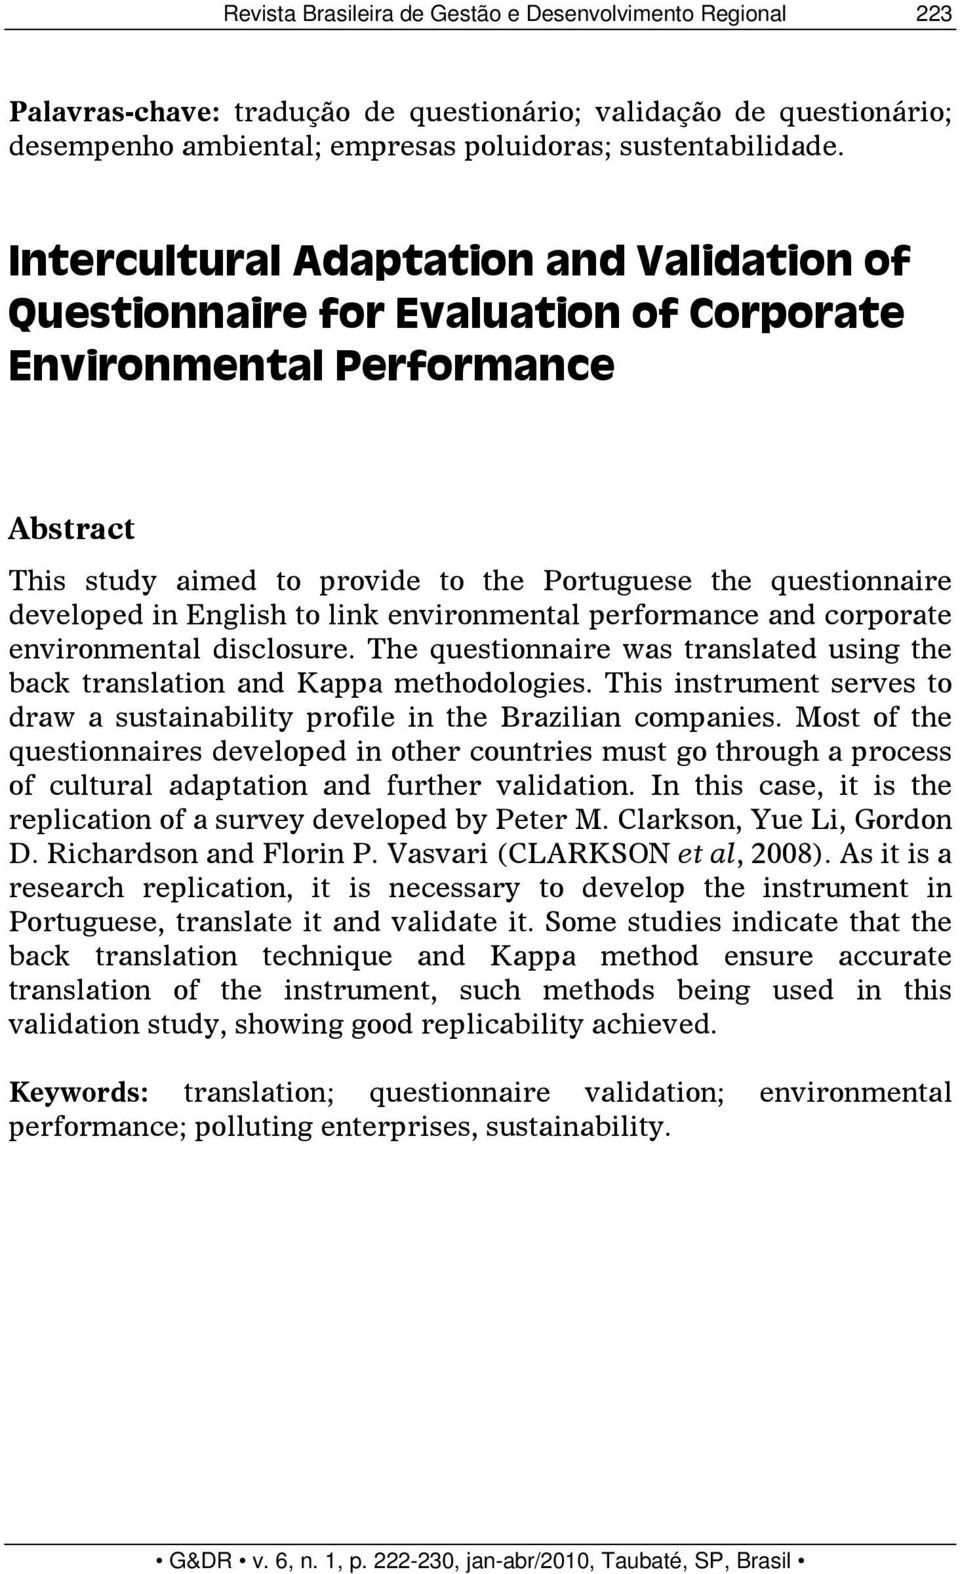 English to link environmental performance and corporate environmental disclosure. The questionnaire was translated using the back translation and Kappa methodologies.